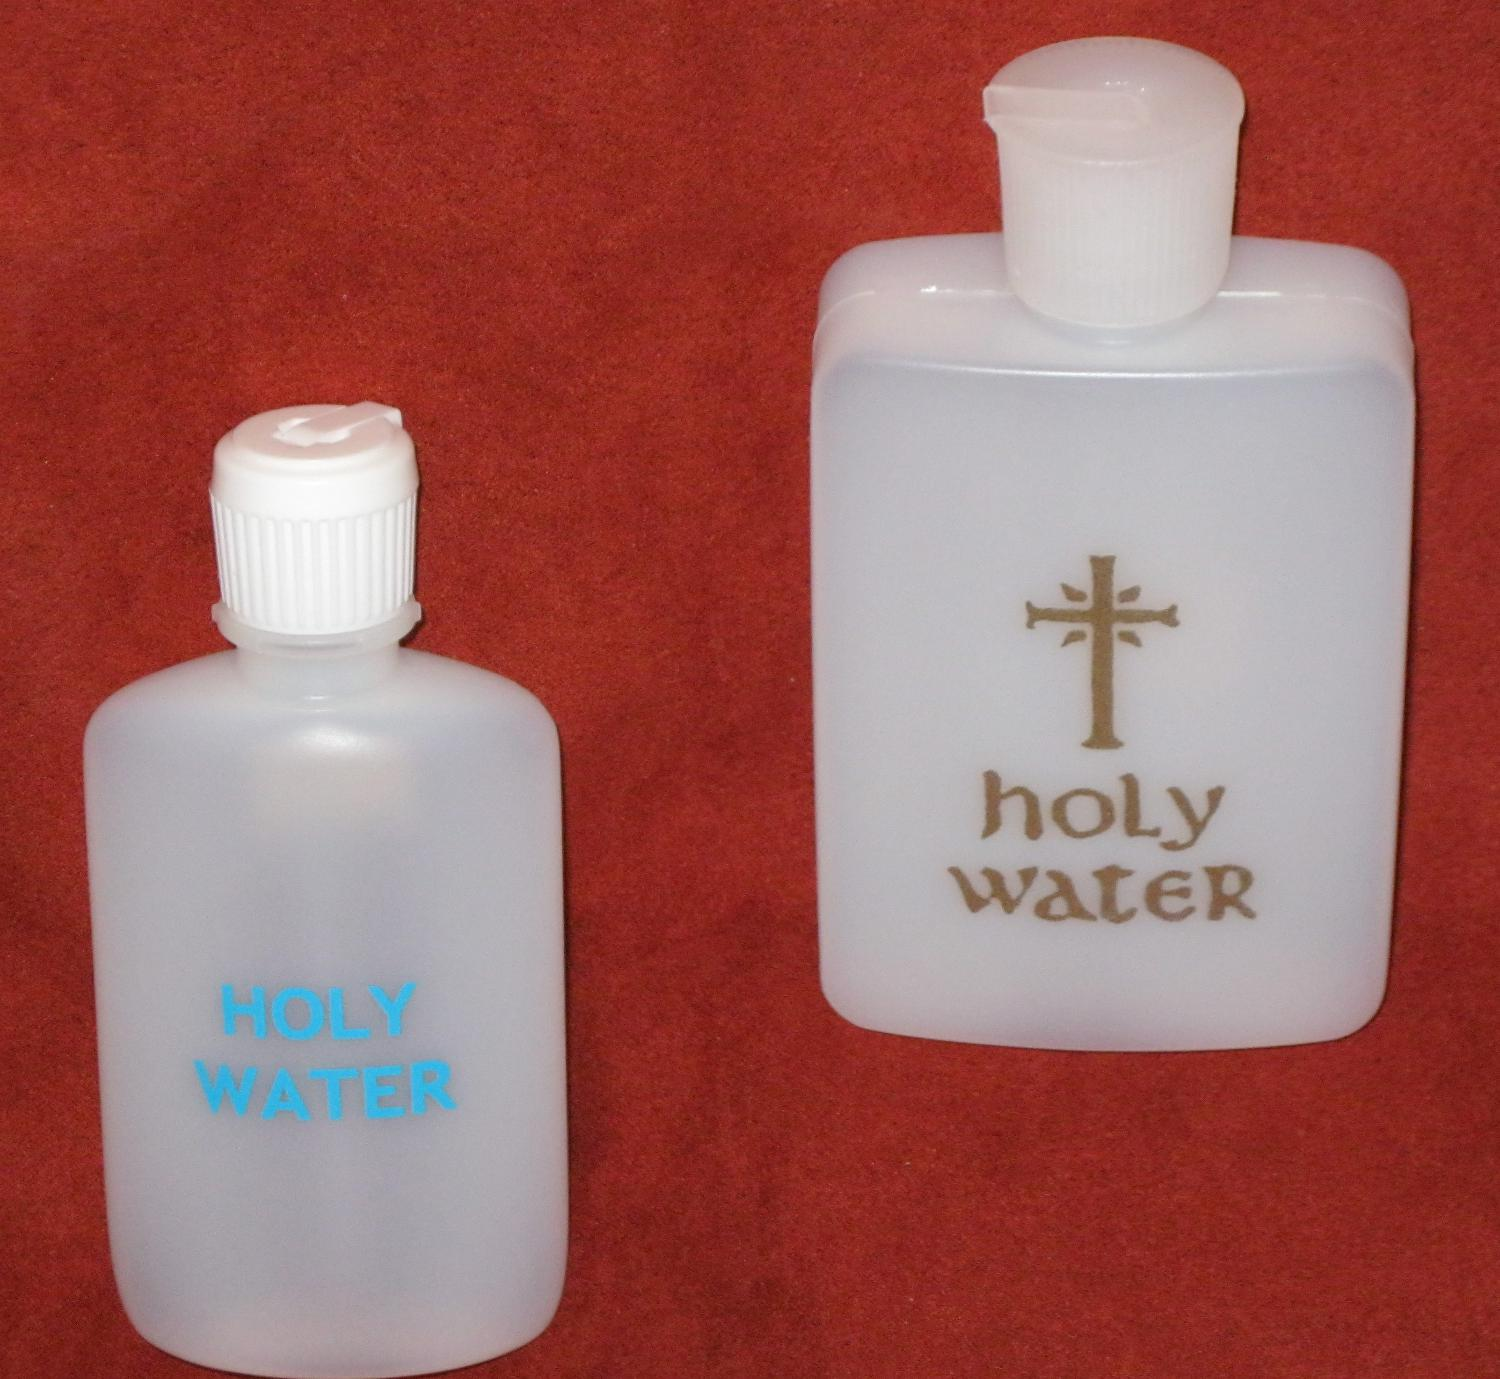 What Is The Difference Between Holy Water And Regular Water